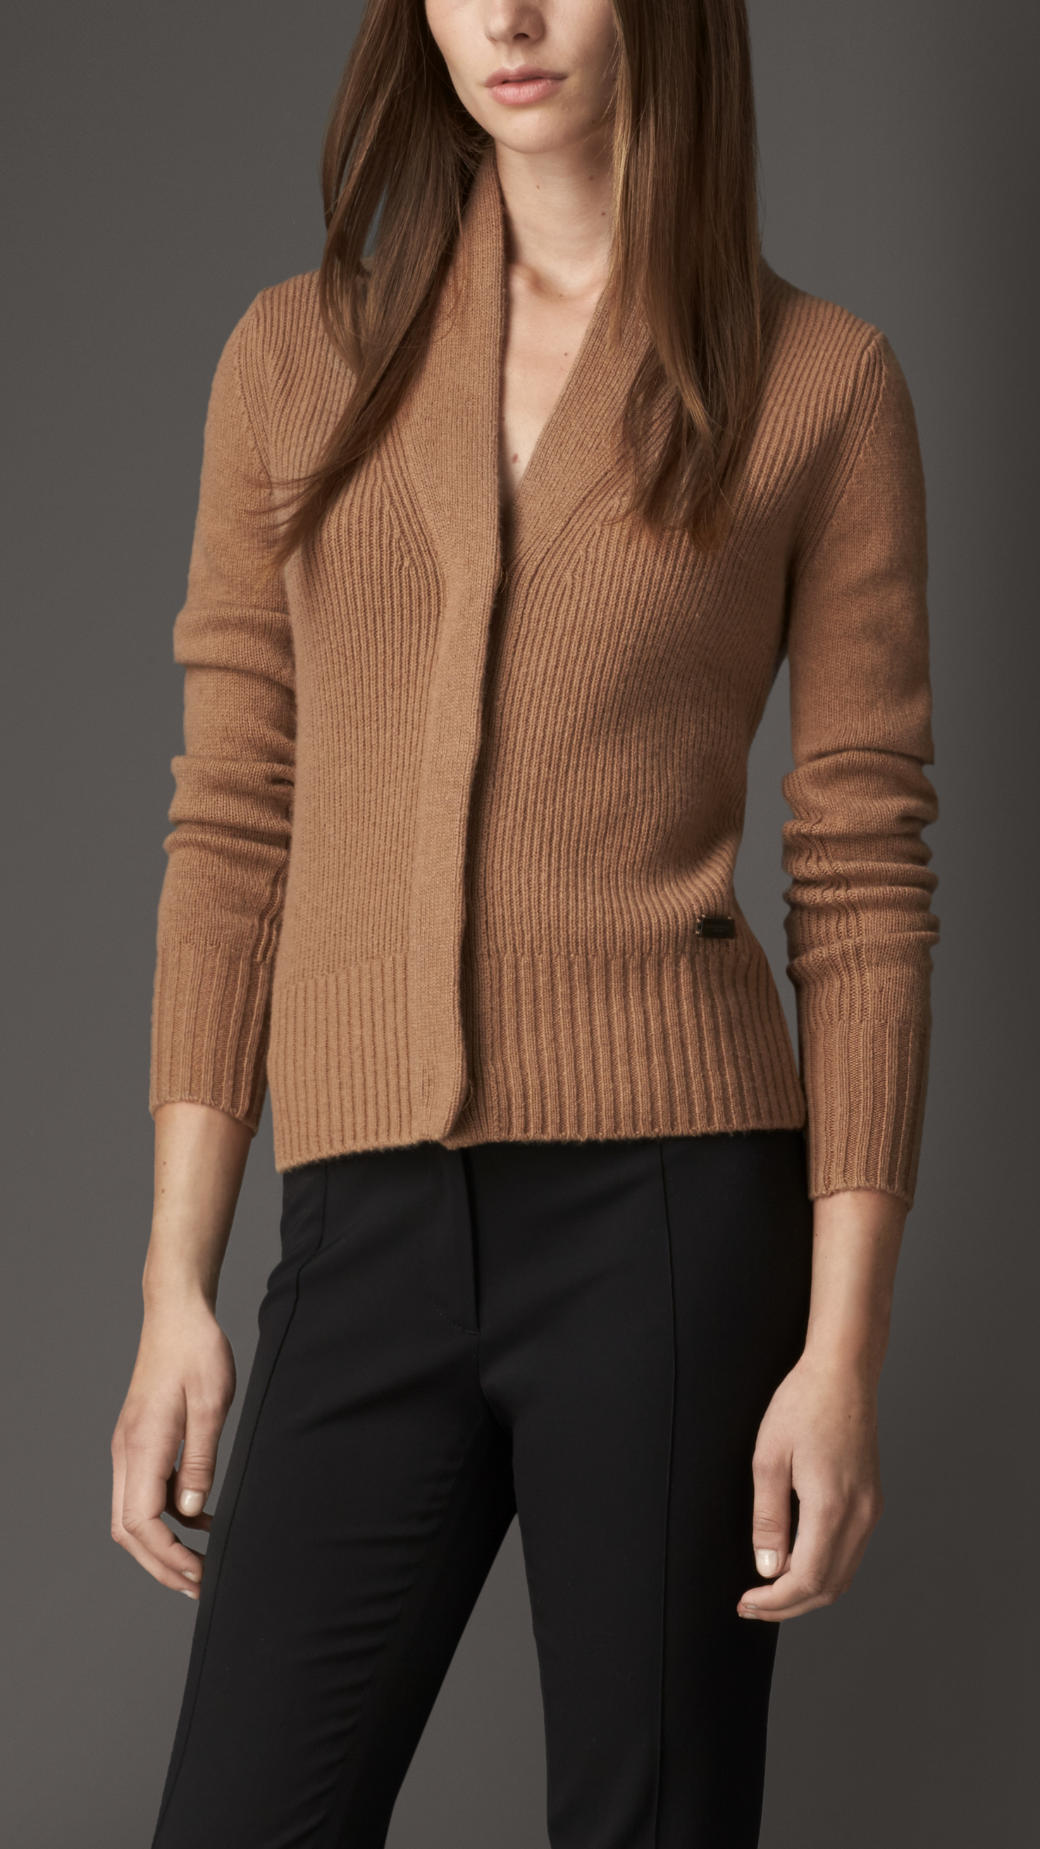 Burberry Cashmere Shawl Collar Cardigan in Brown | Lyst